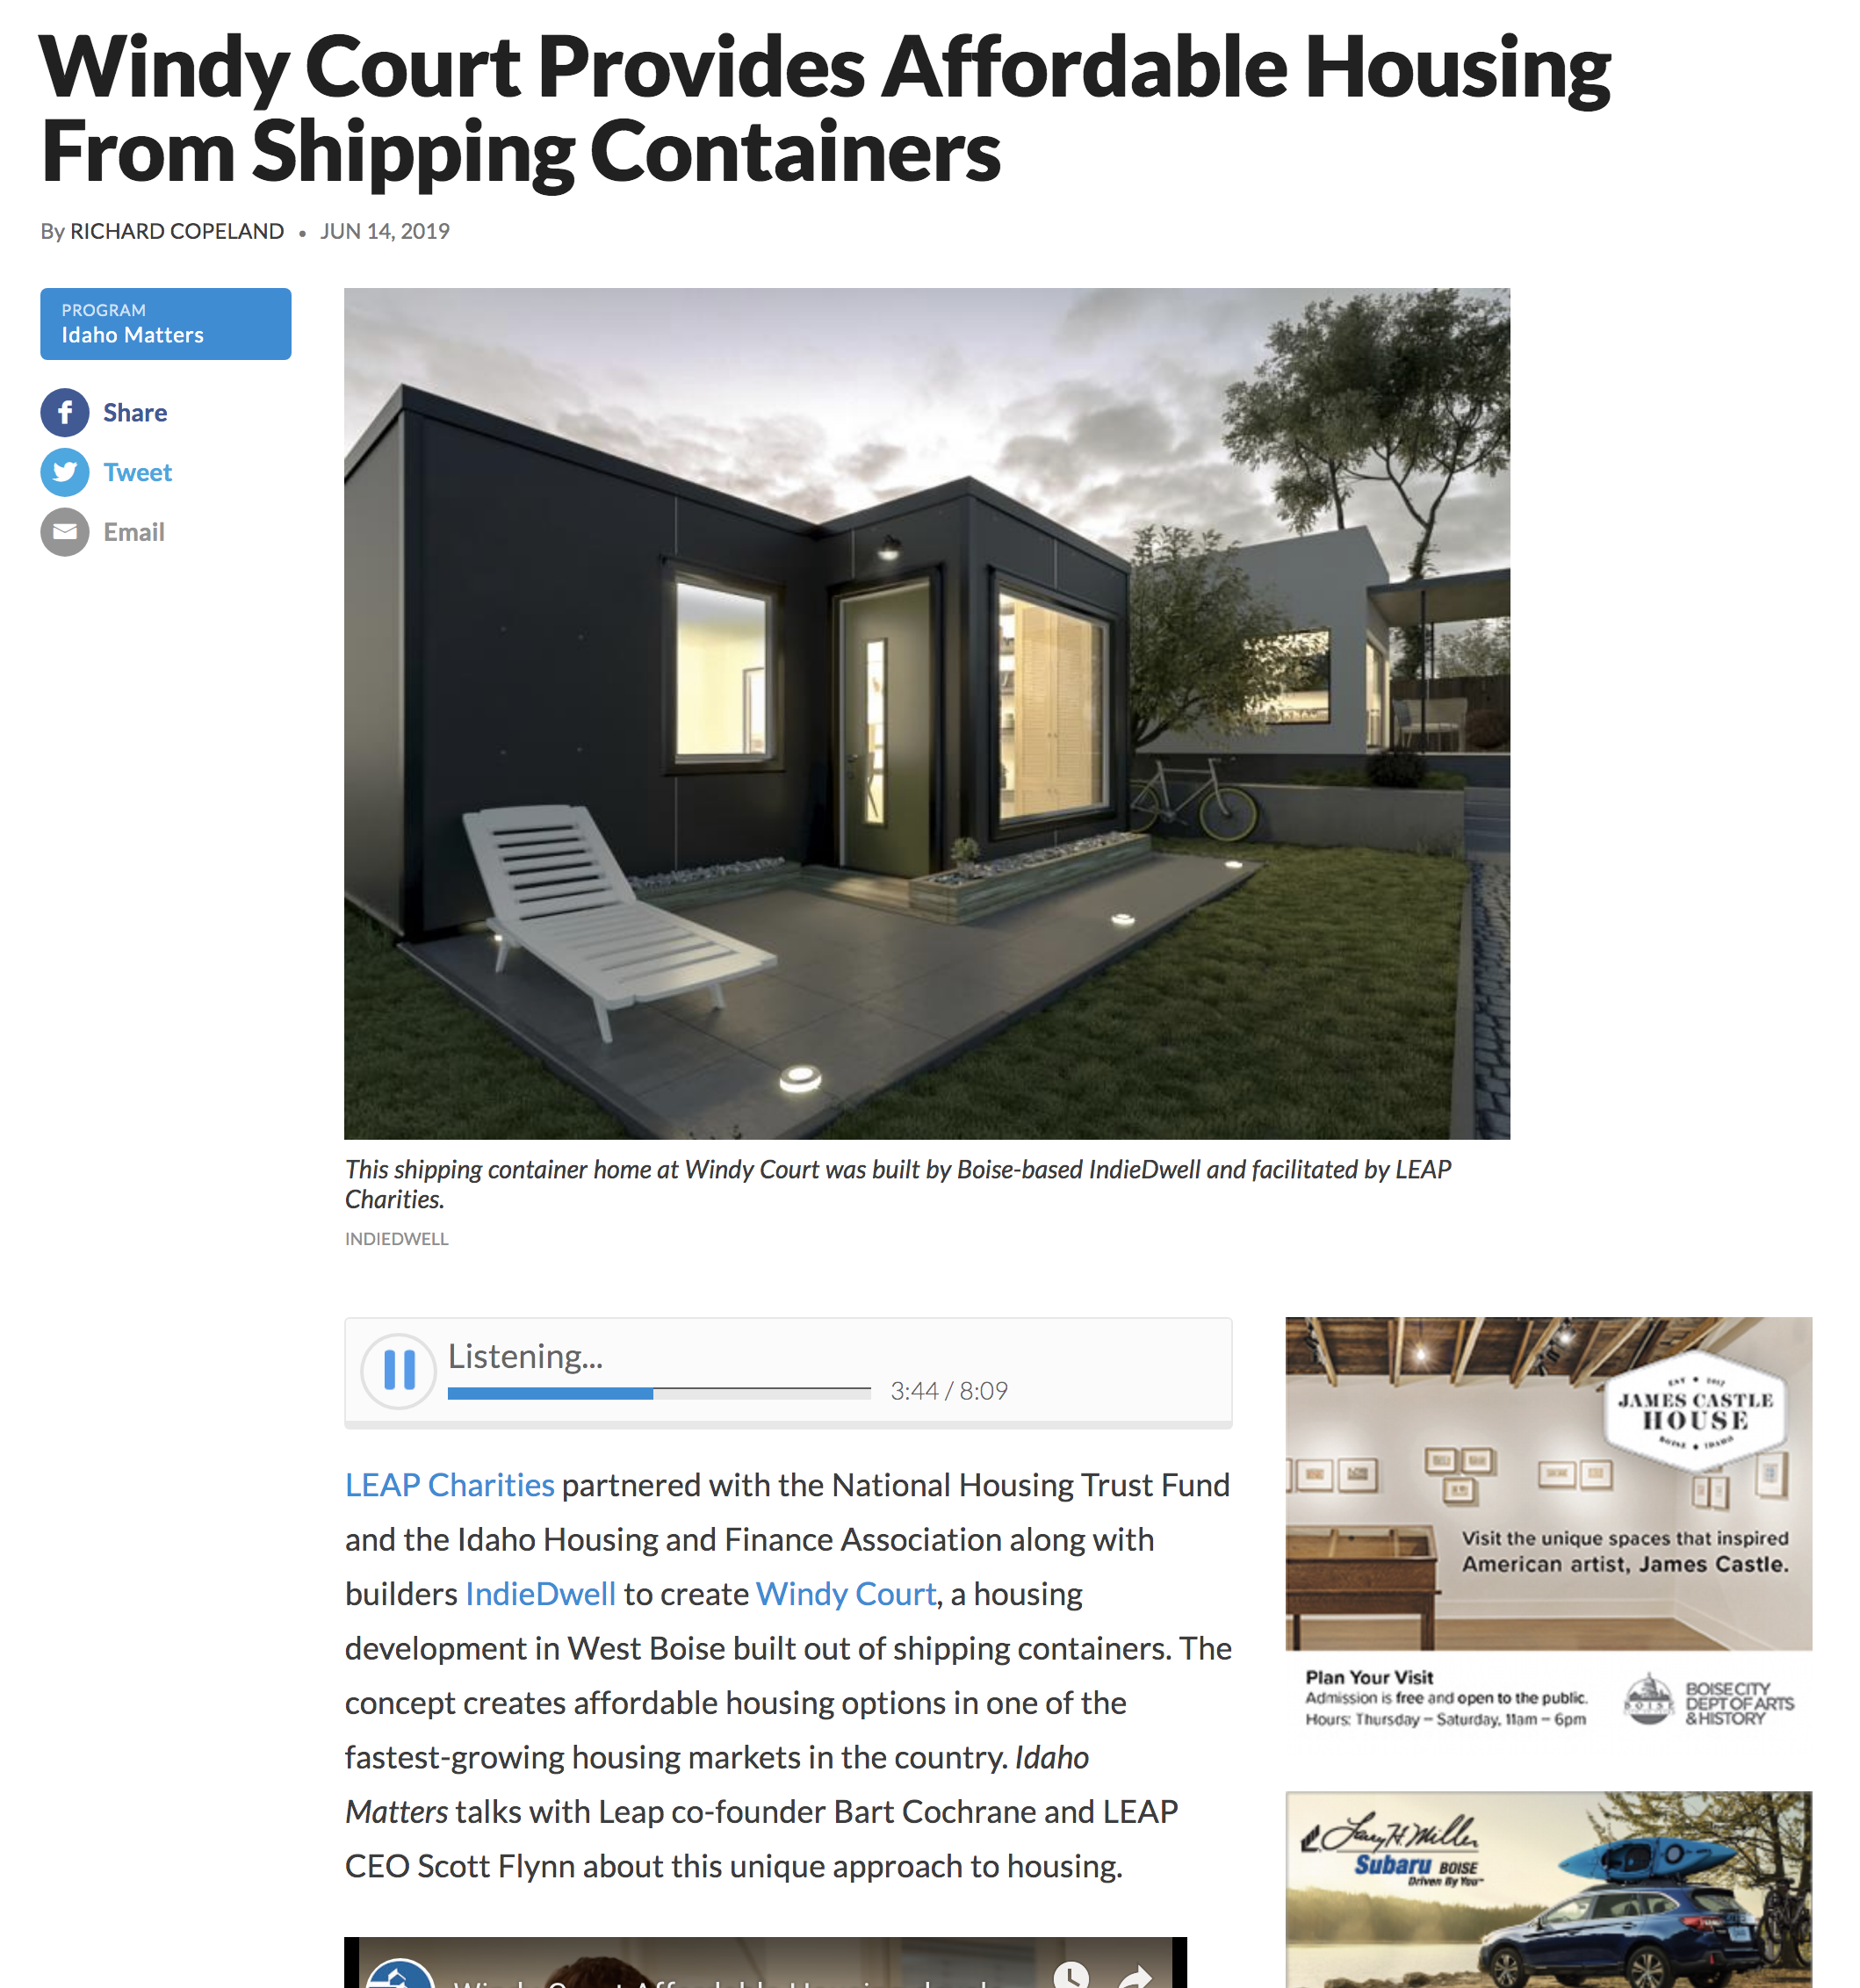 Windy_Court_Provides_Affordable_Housing_From_Shipping_Containers___Boise_State_Public_Radio_🔊.png